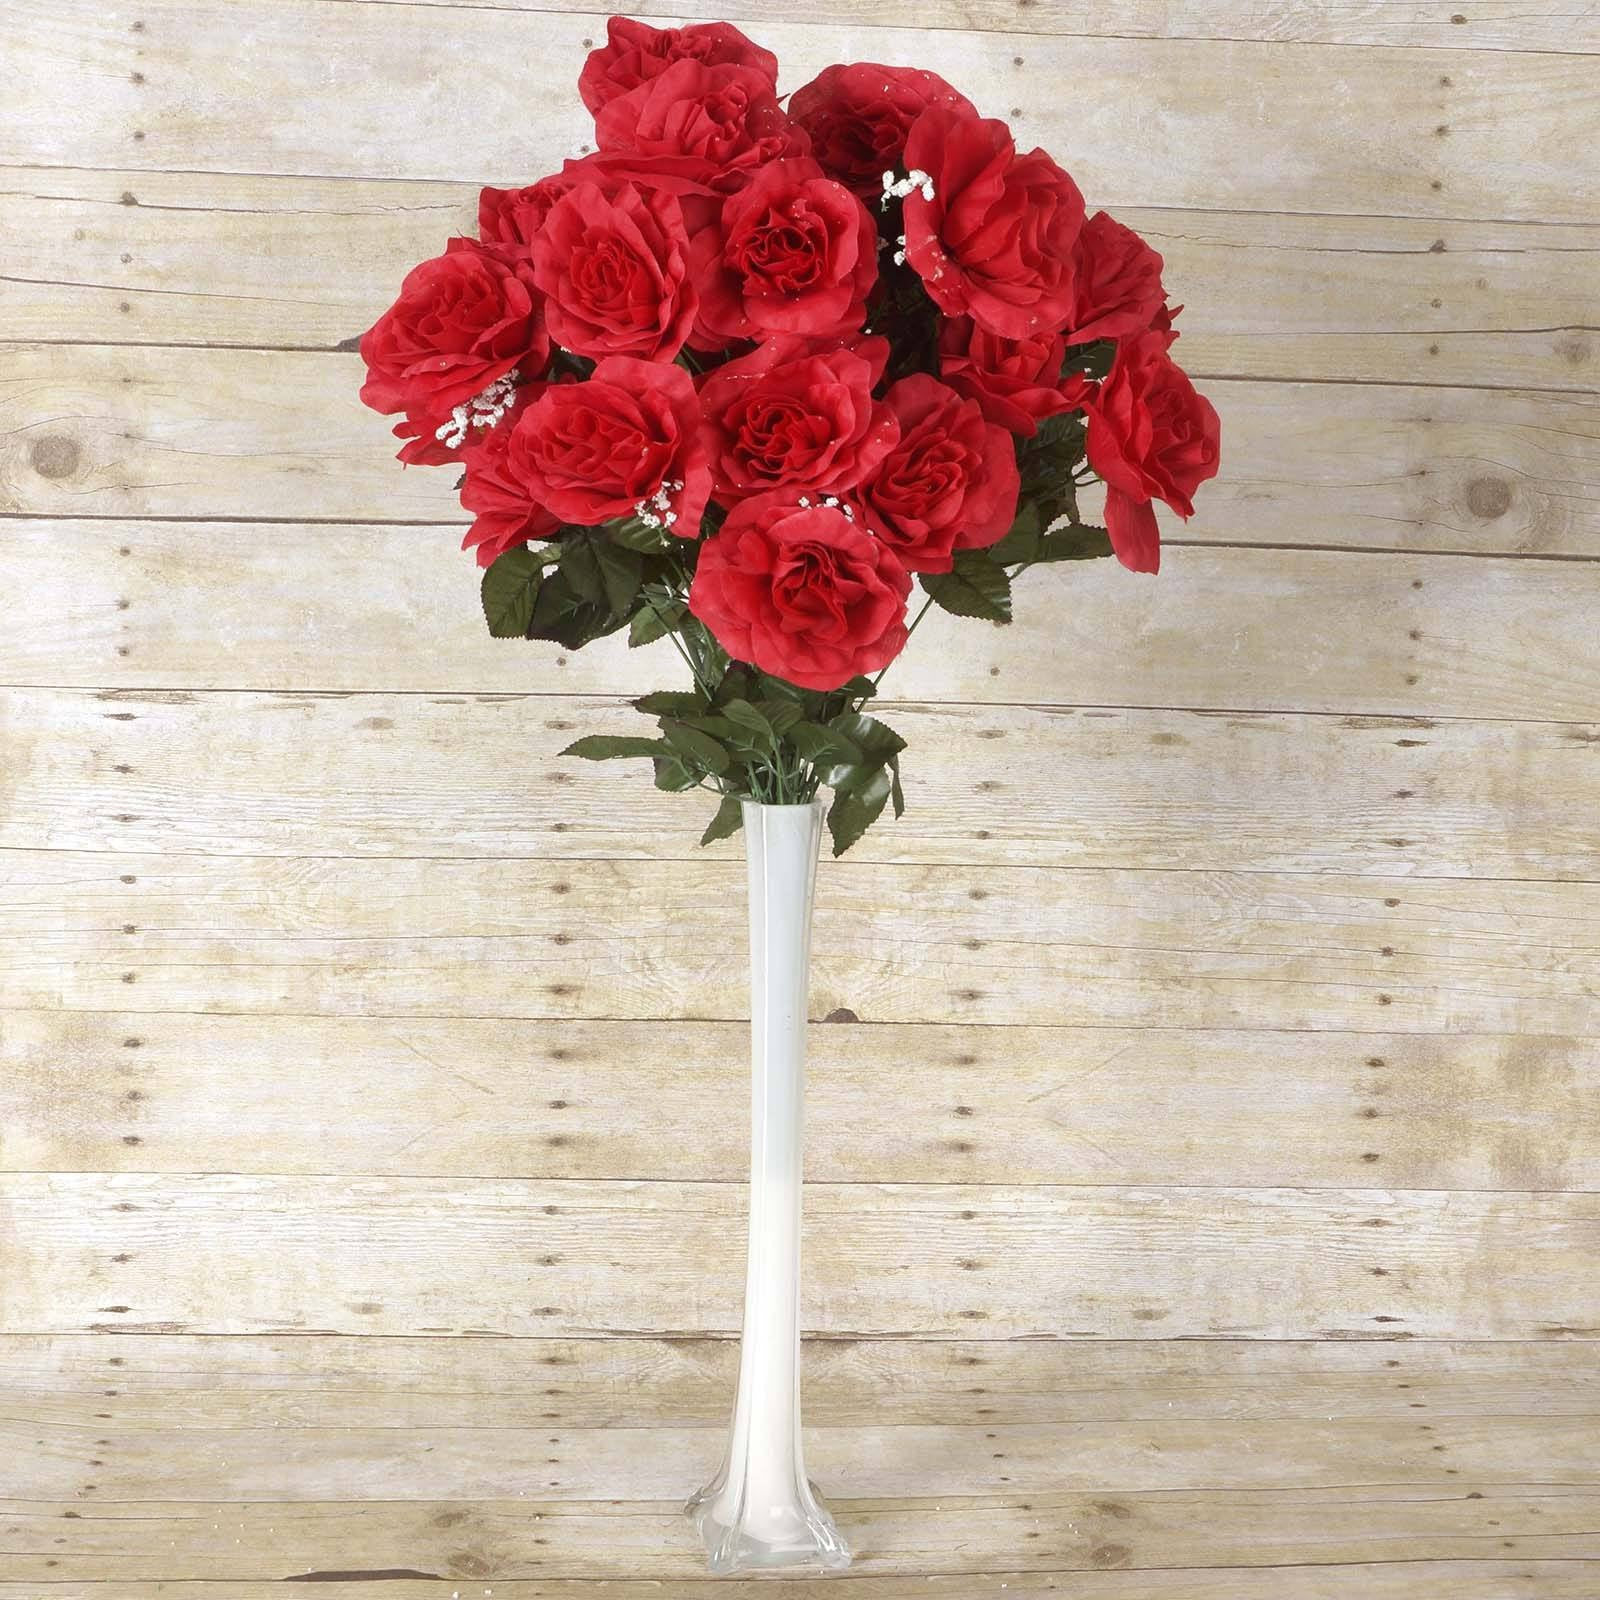 96 Artificial Red Giant Silk Open Roses Wedding Bridal Bouquet ...